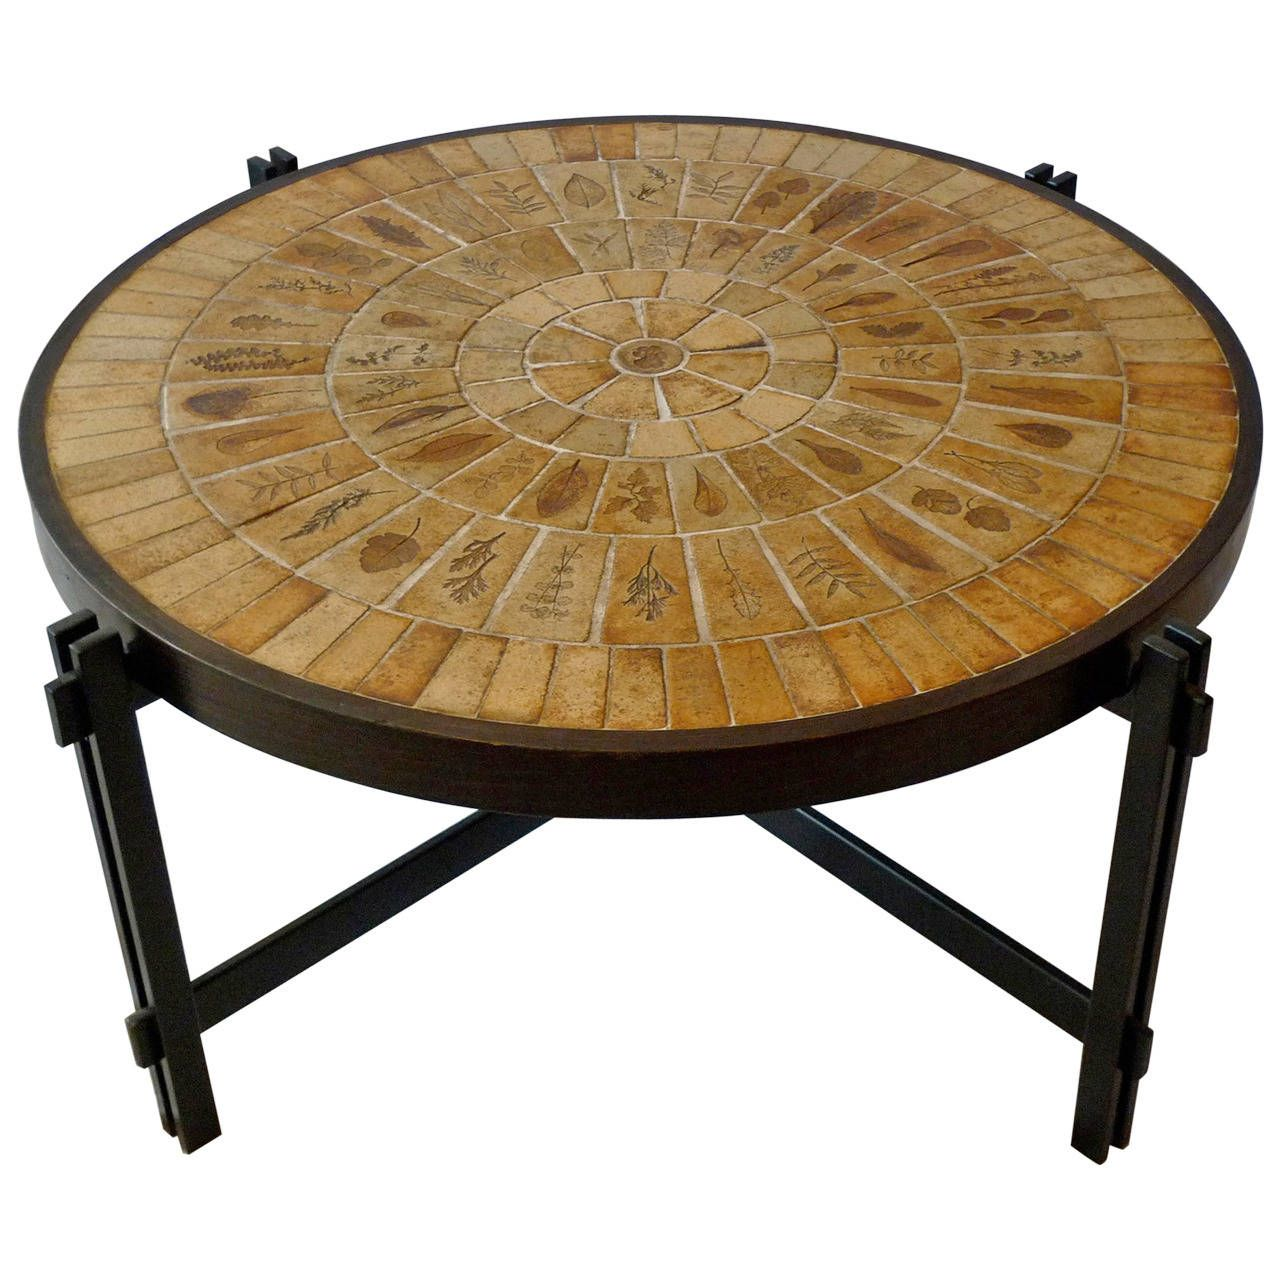 French 1960s Round Coffee Table In Tile And Iron 1stdibs Com Coffee Table Round Coffee Table Table [ 1280 x 1280 Pixel ]